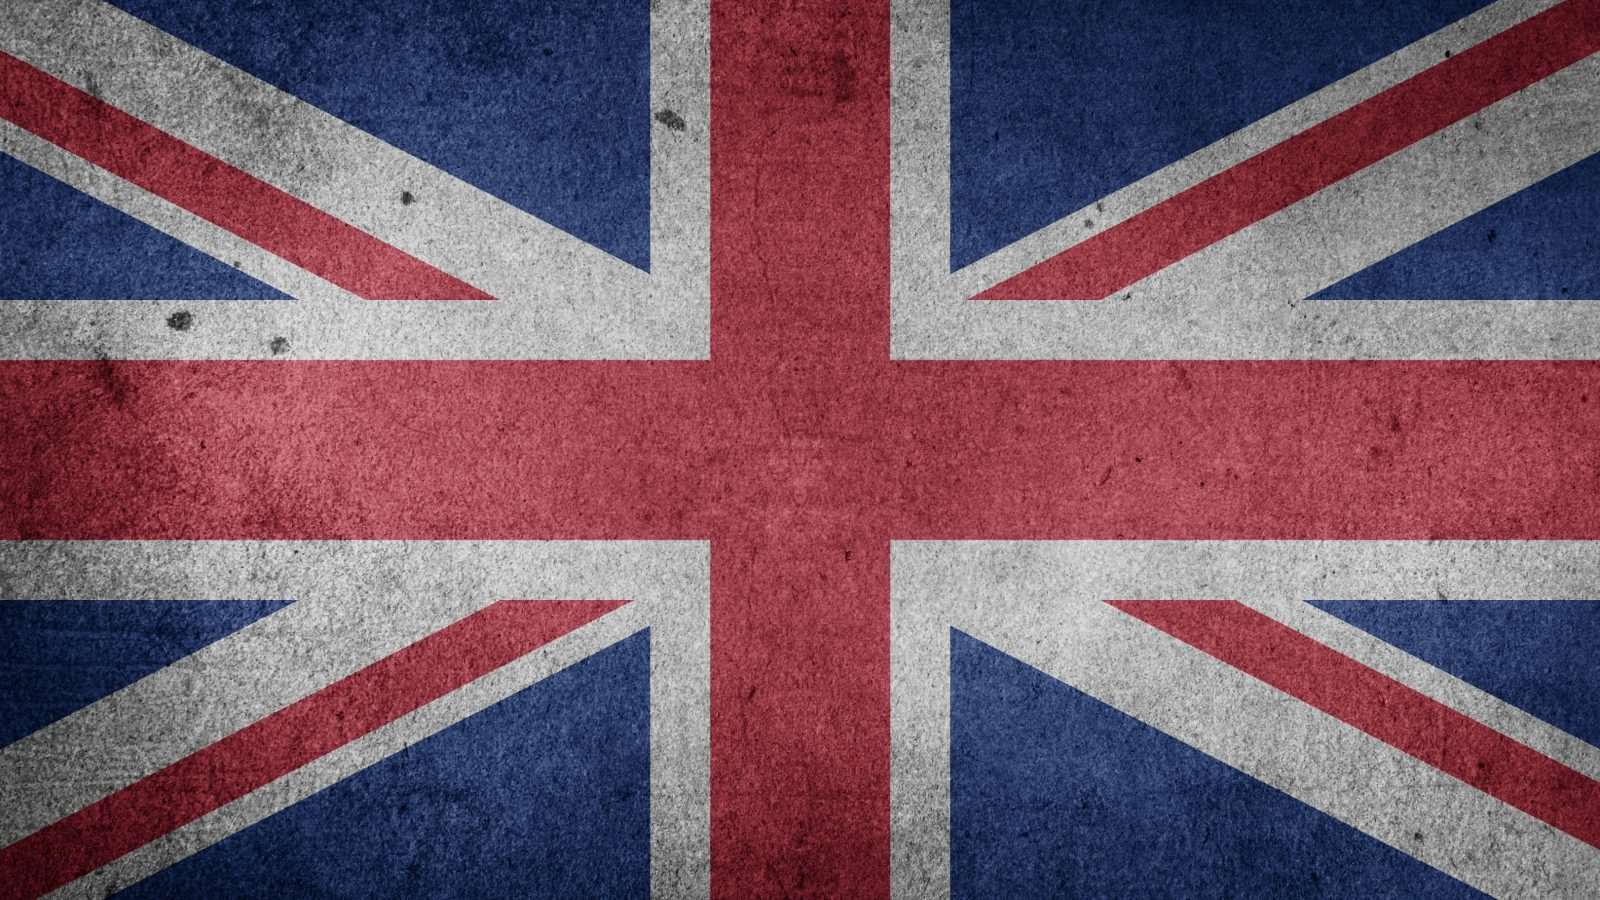 Funny Iphone 5 Wallpaper Flag Of The United Kingdom Grunge Hd Wallpaper